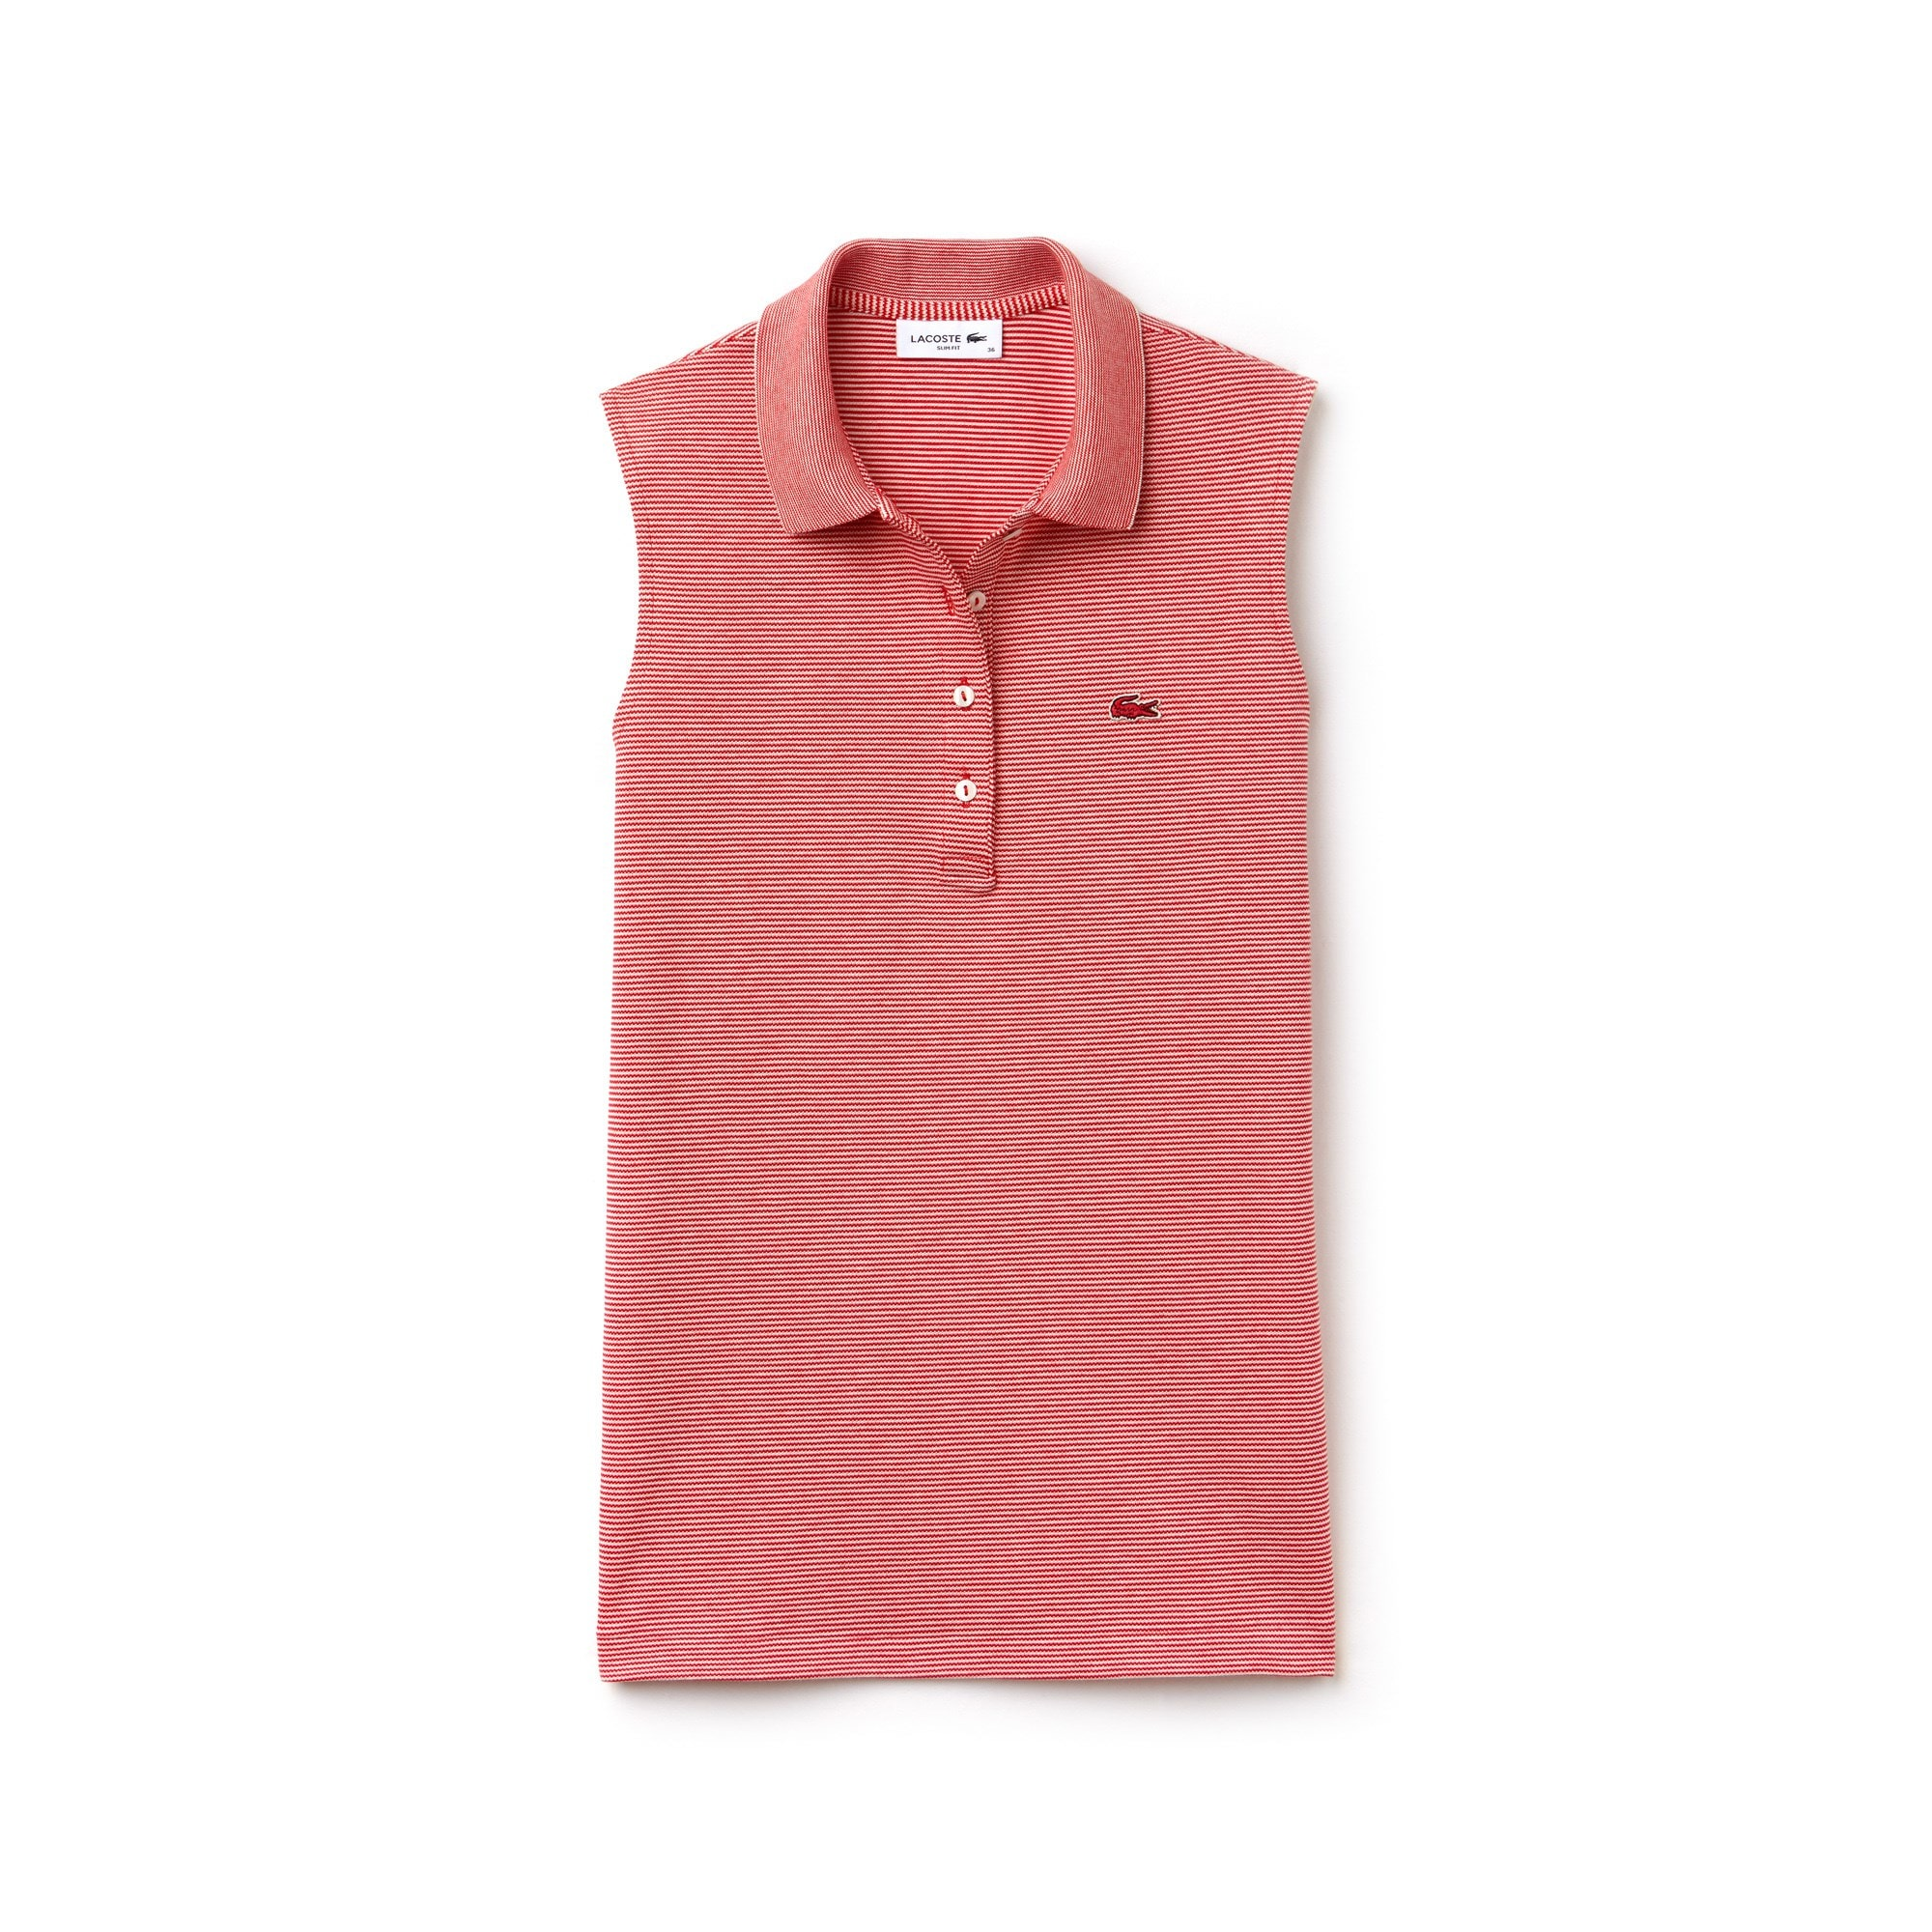 Lacoste polo dames slim fit, stretch mini piqué met krijtstreepjes